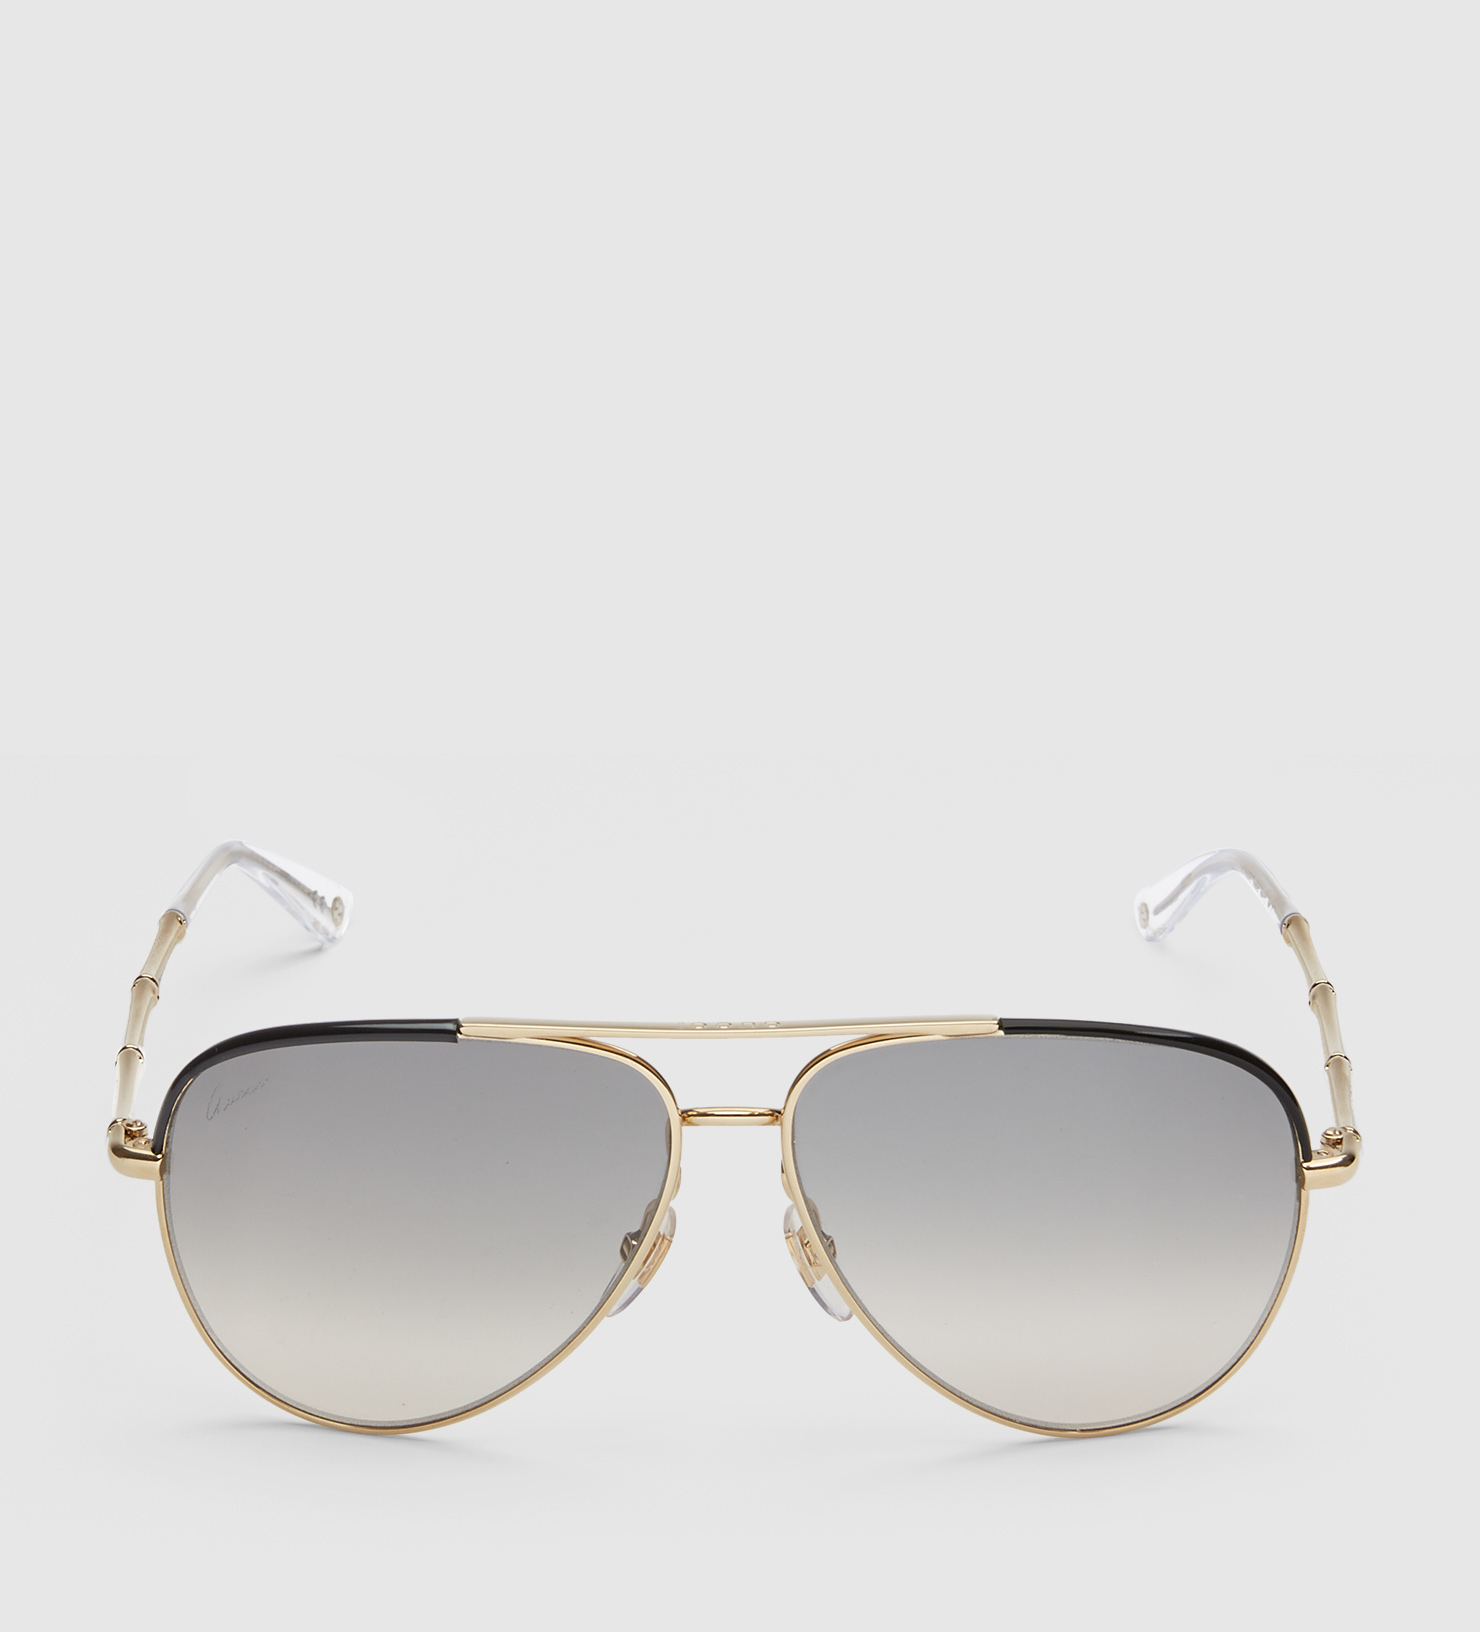 bdda283e4d7 Gucci Aviator Sunglasses With Metal Bamboo Temples in Natural - Lyst